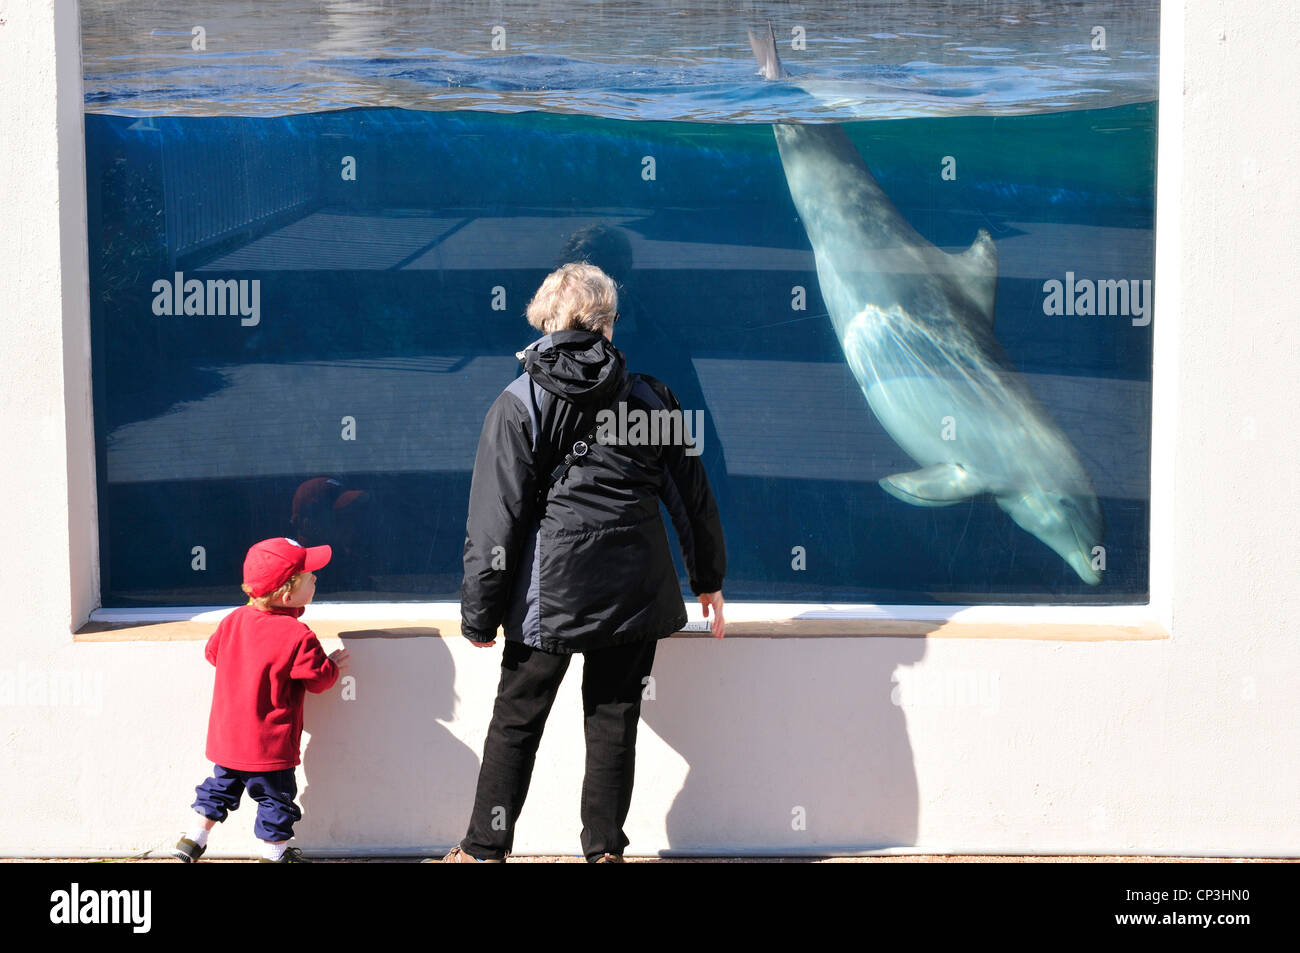 Woman and child watching an Atlantic bottlenose dolphin swimming in a large tank at Marineworld, Florida - Stock Image